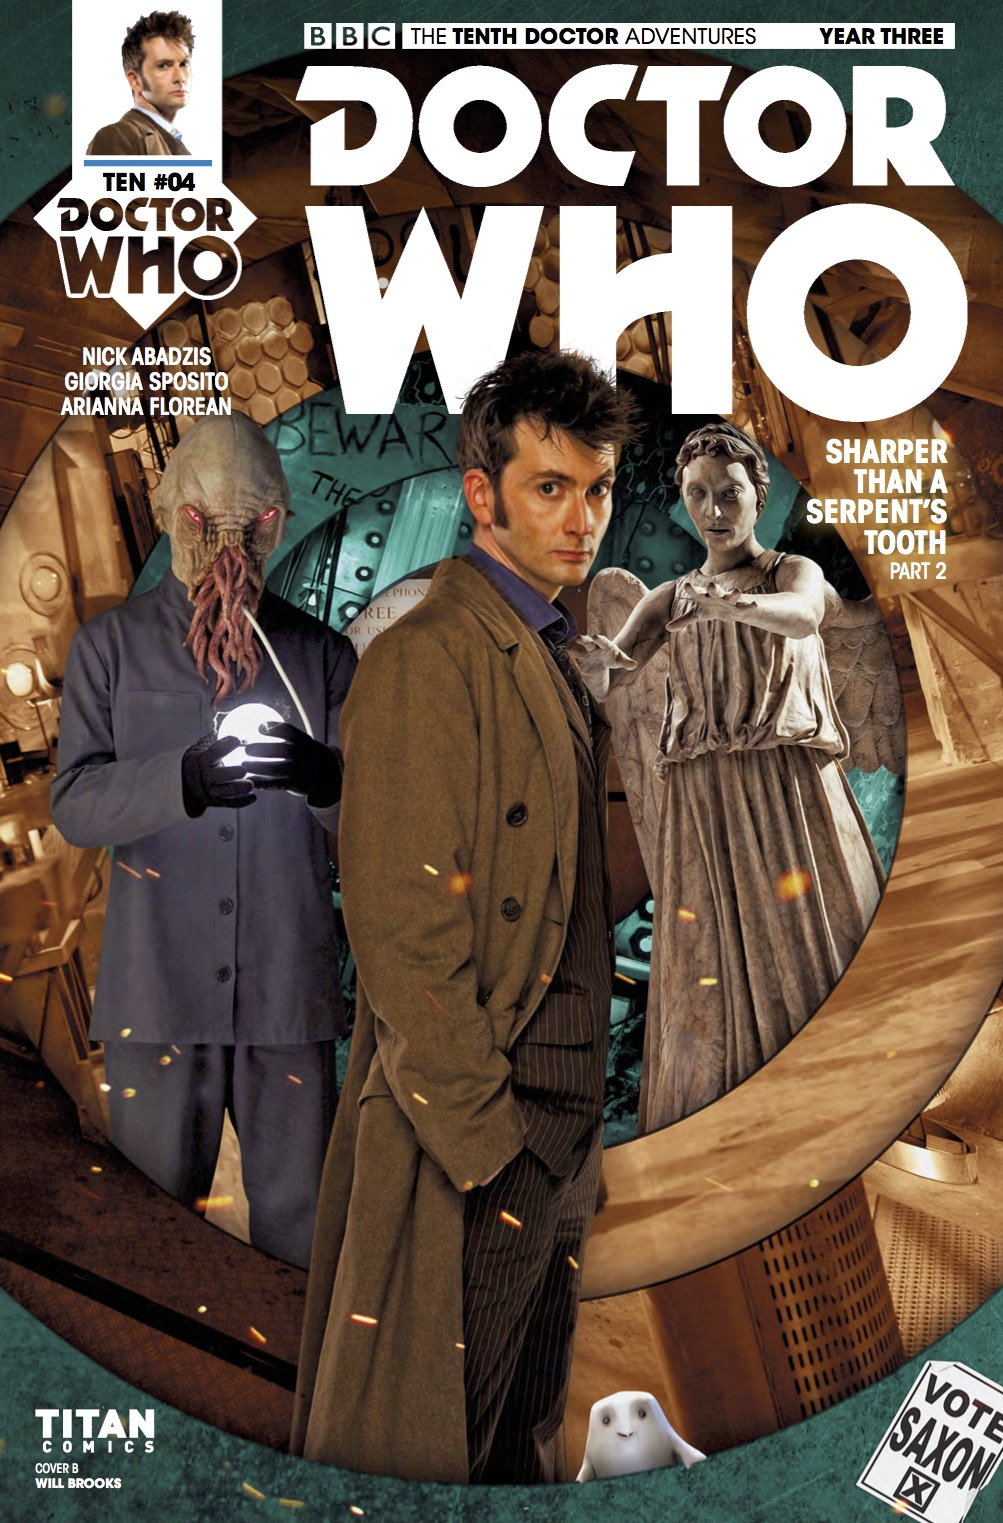 THE TENTH DOCTOR YEAR THREE #4 Cover B (Credit: Titan)